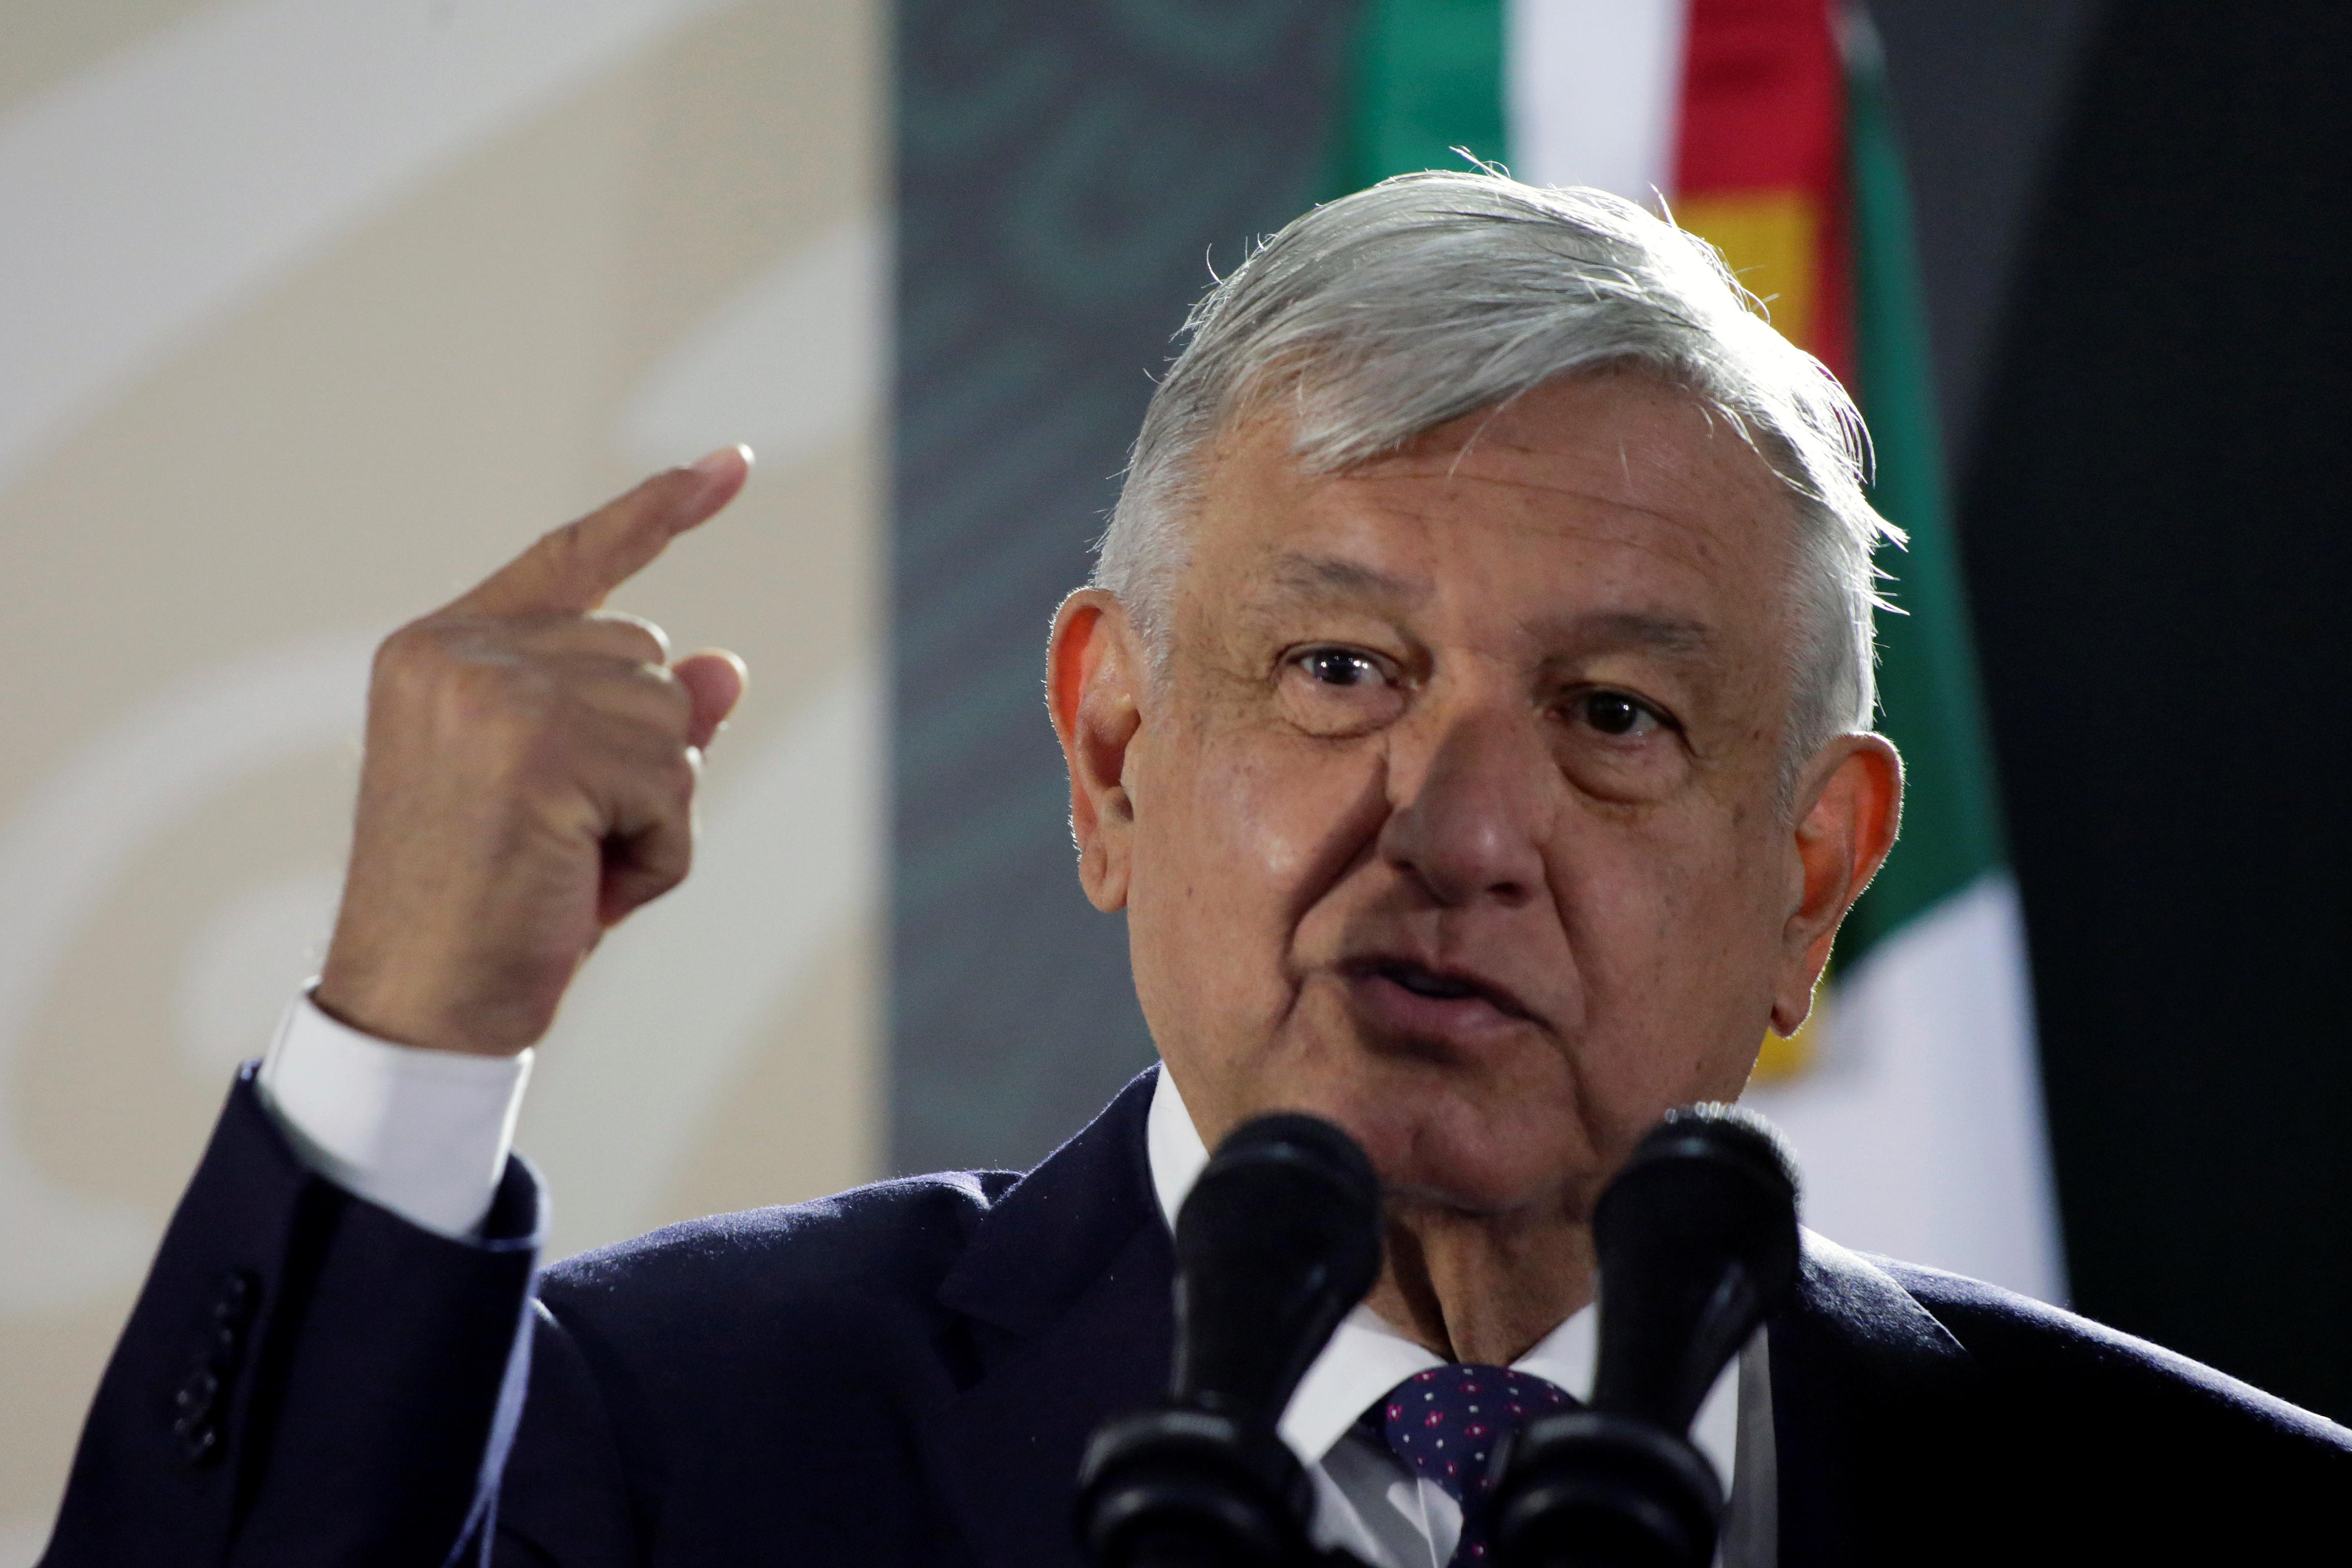 Mexico is the wall: president under fire over migration clampdown